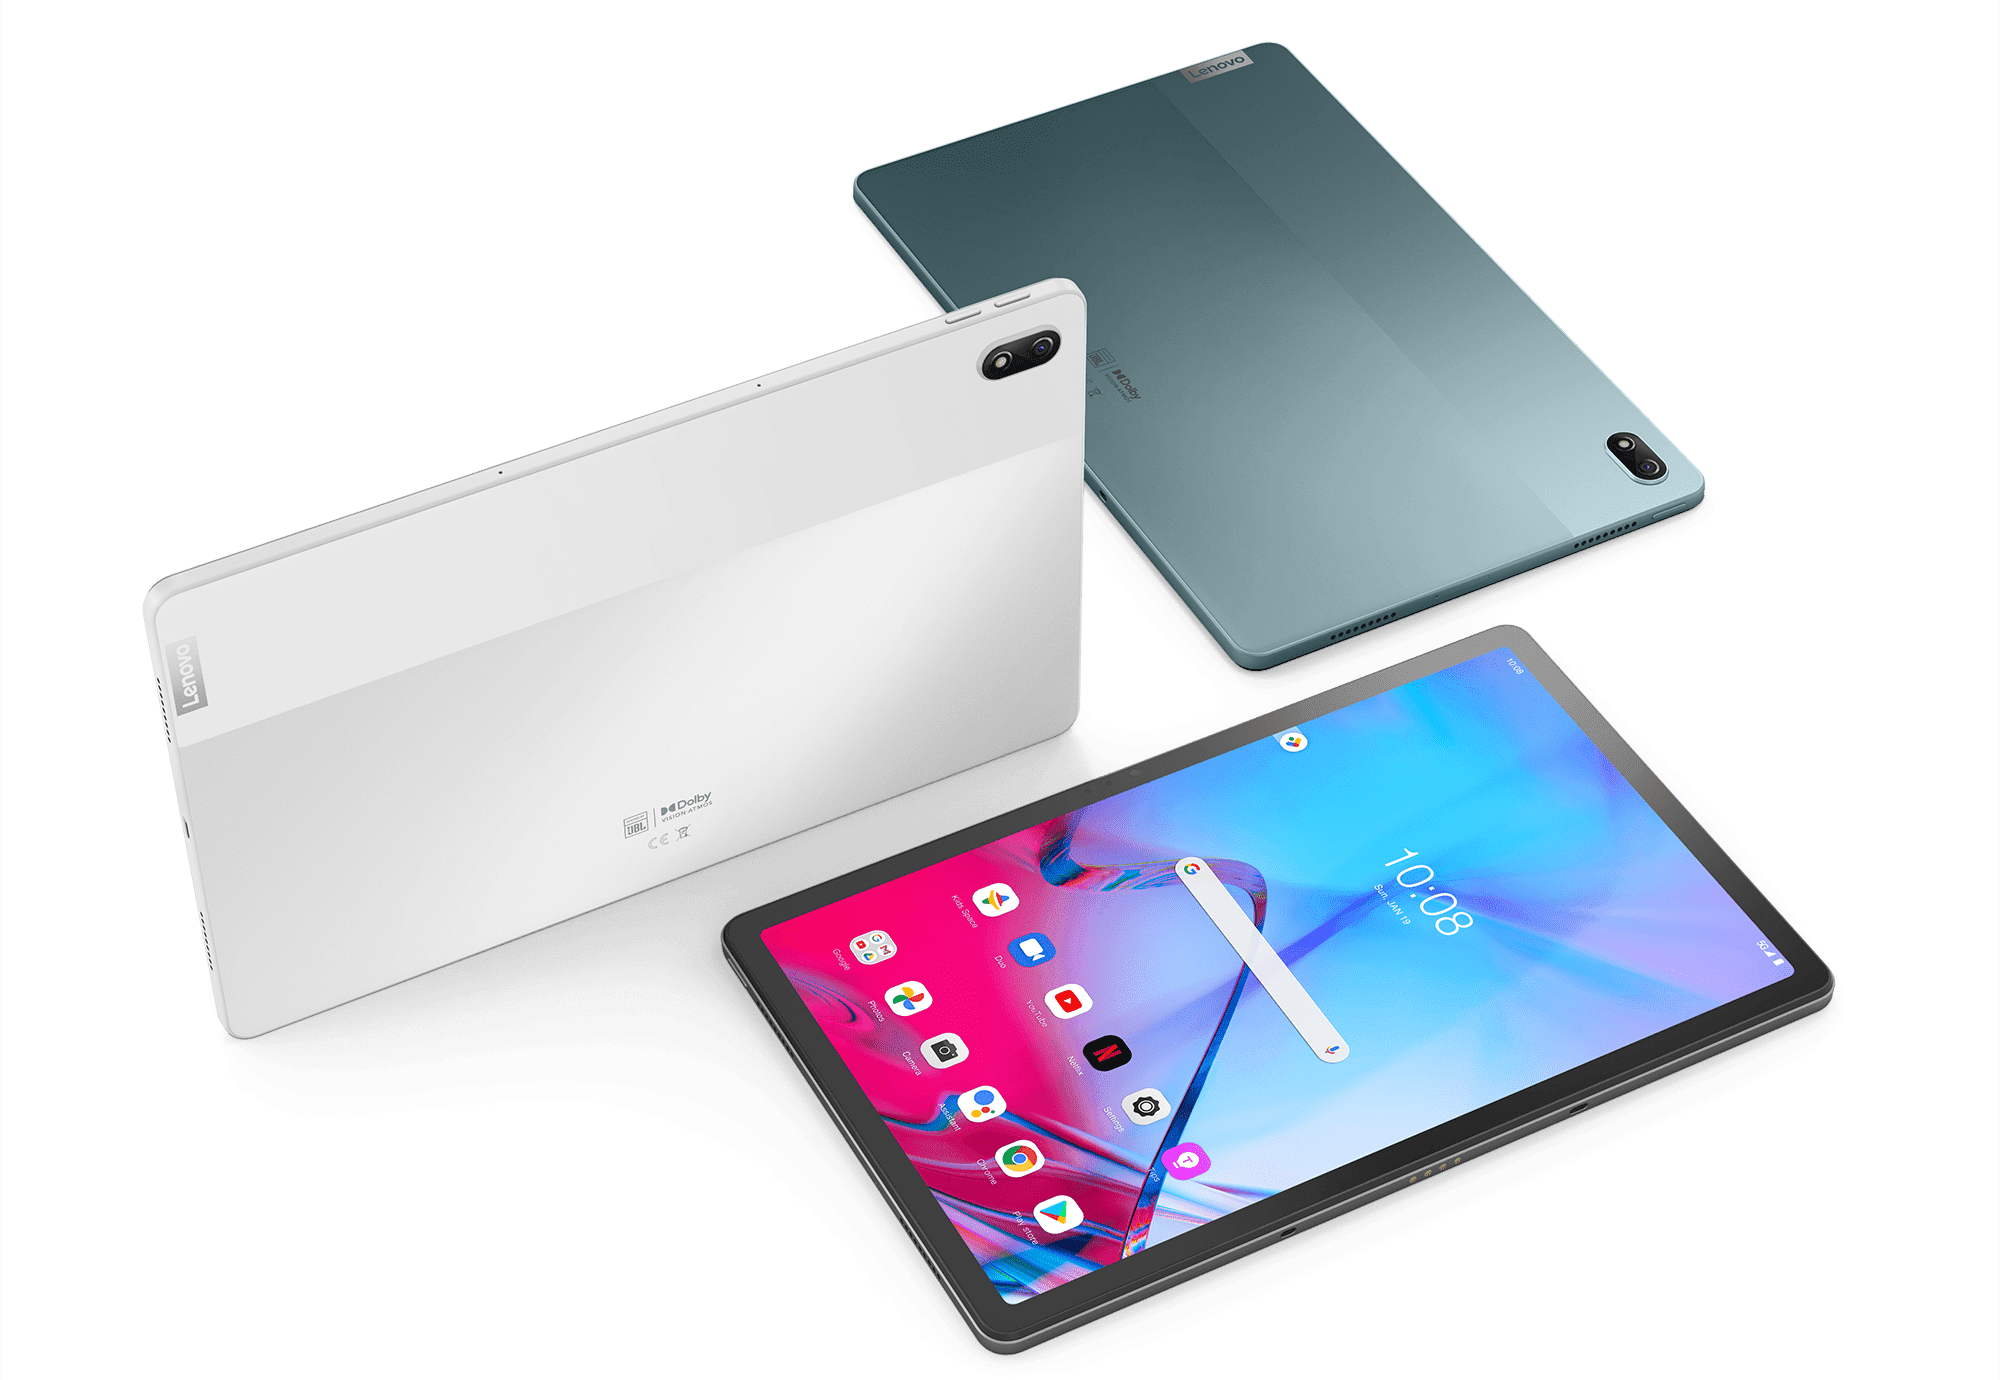 Lenovo Tab P11 5G - group shot showing multiple colors